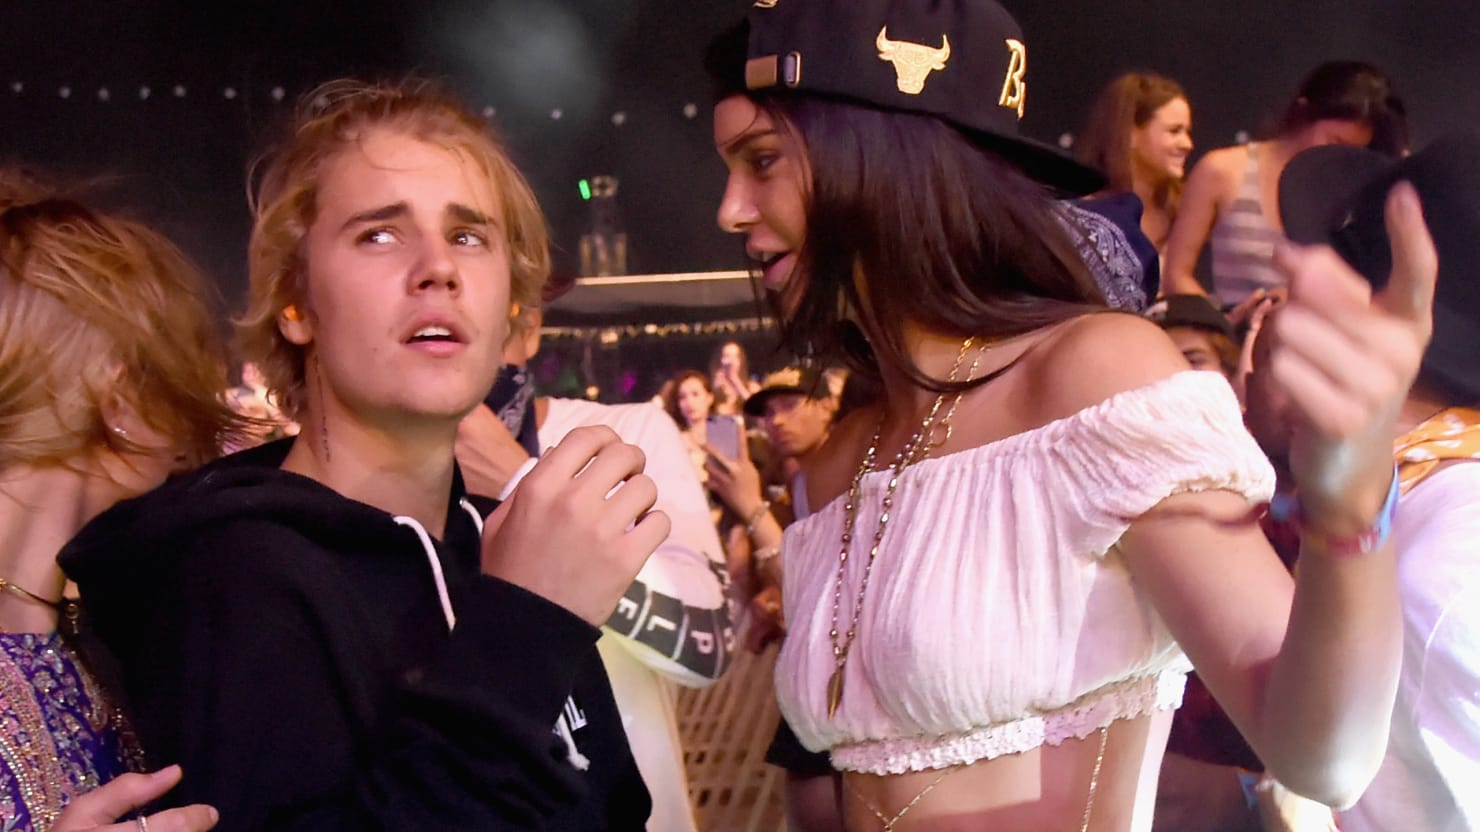 King of the Douchebags: Justin Bieber Carried Out of Coachella in a Chokehold